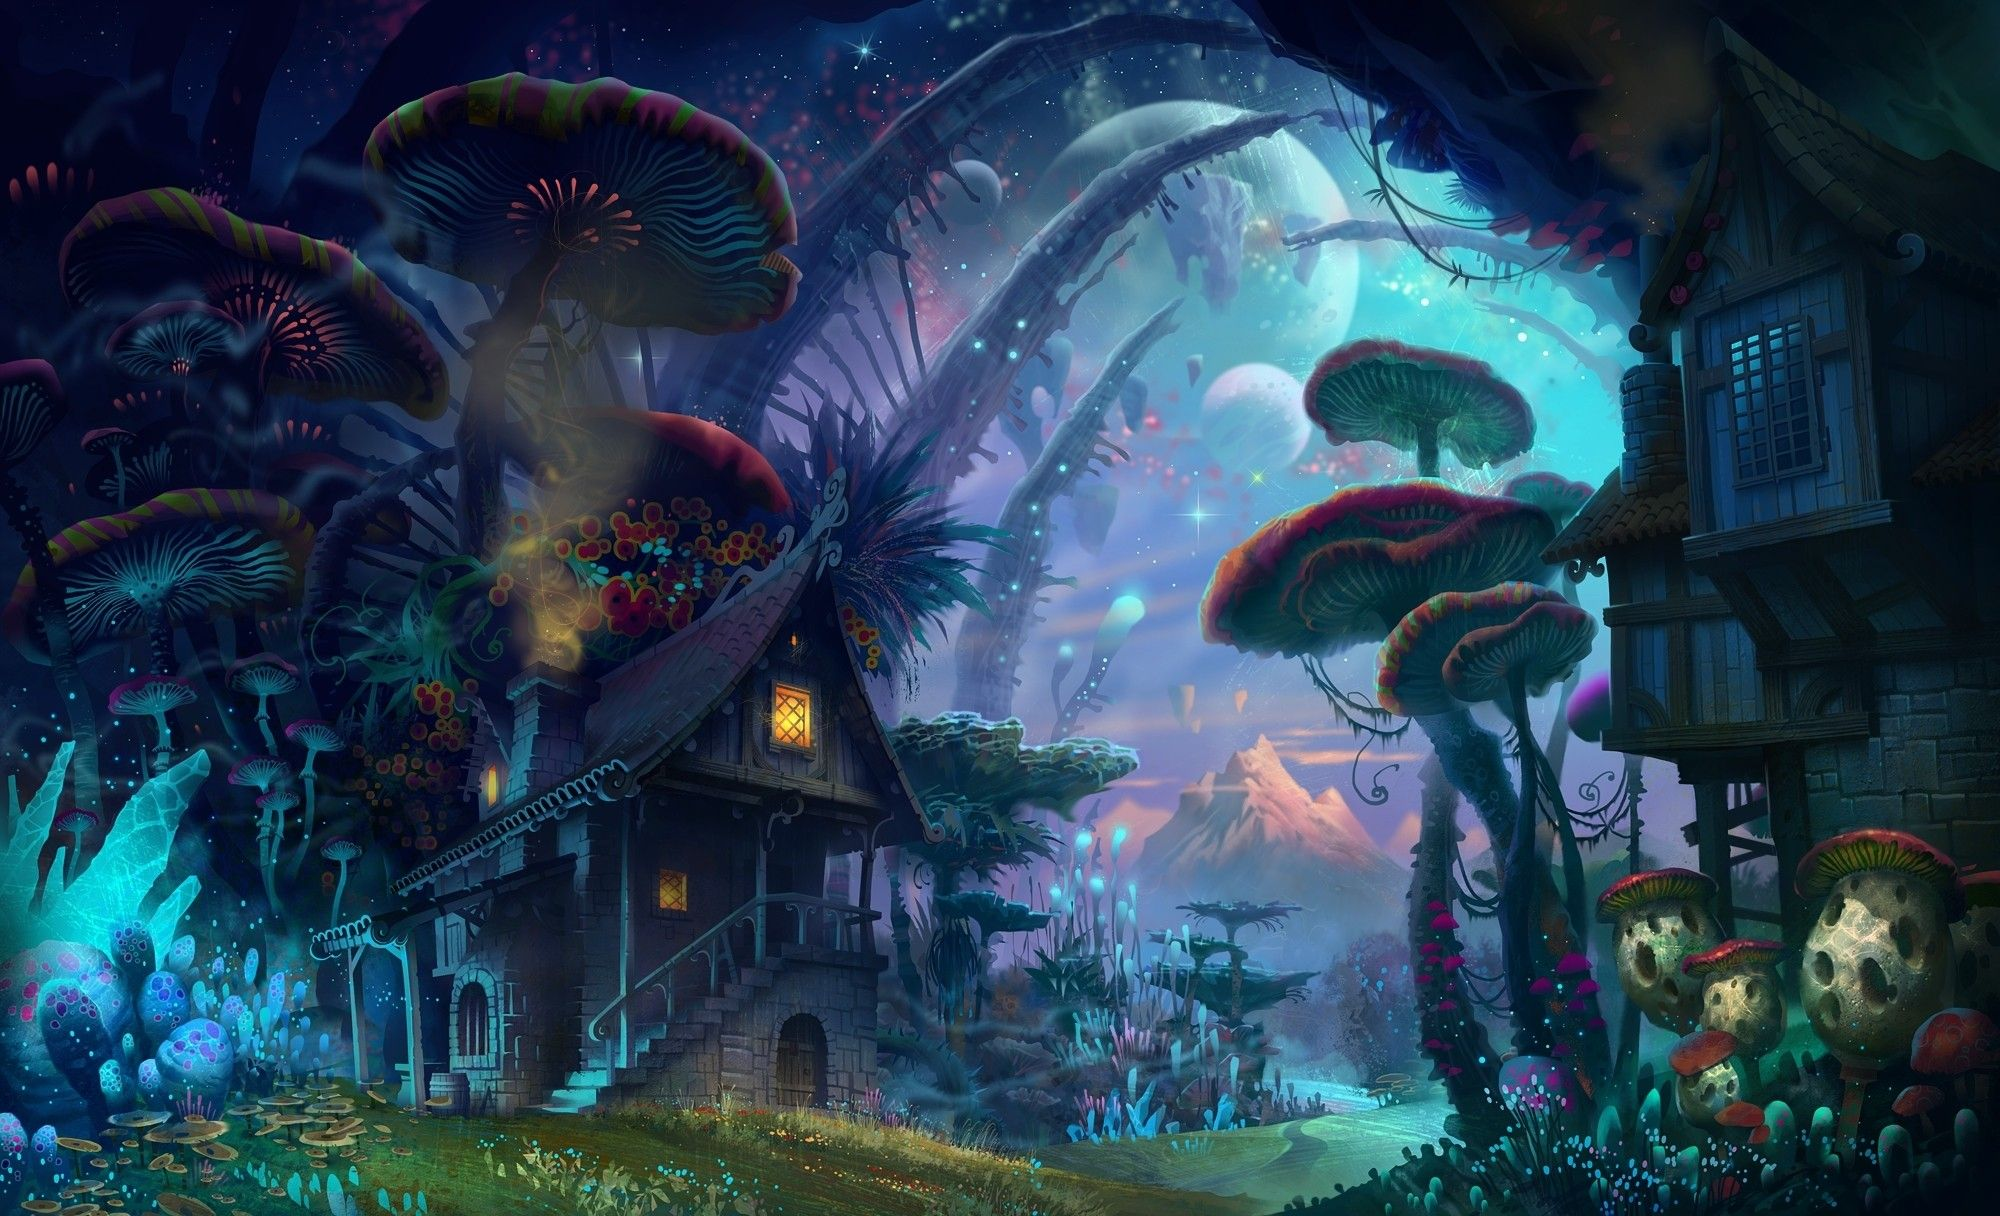 Mushroom Forest Fantasy Art Artwork Wallpaper Nature Art Drawings Psychedelic Art Art Wallpaper